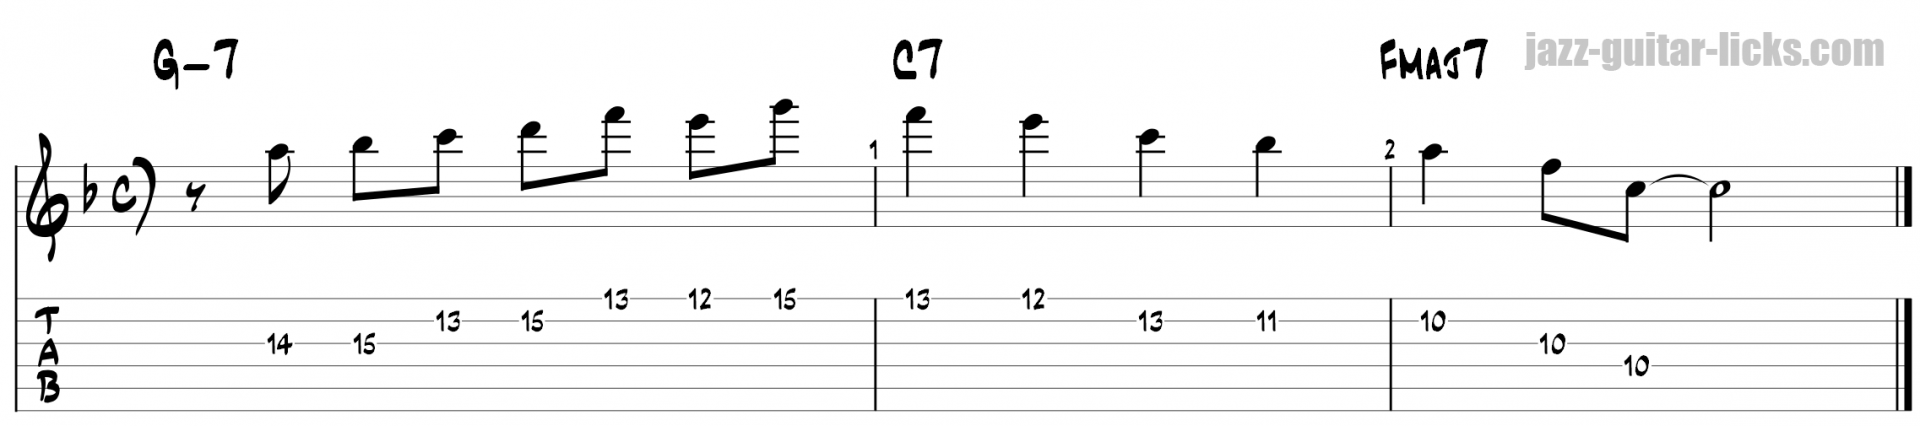 Miles davis tabs for guitar